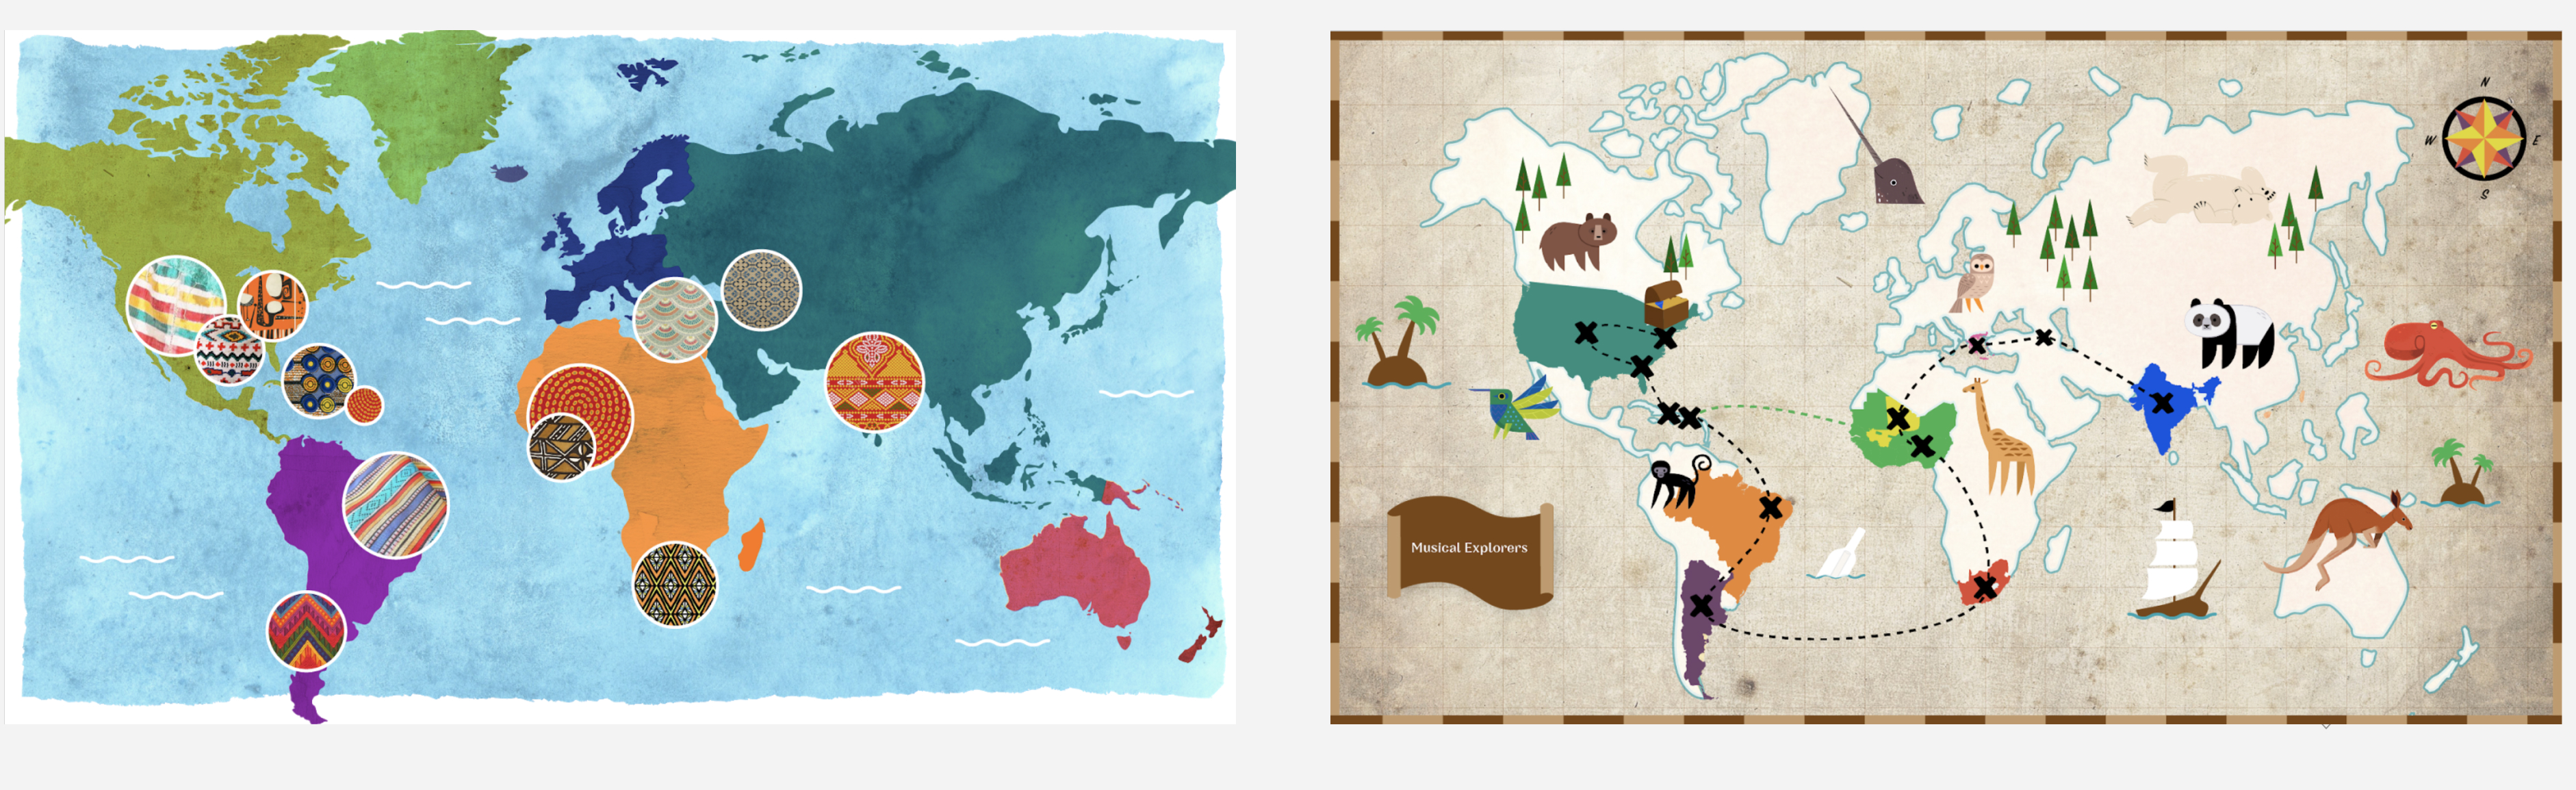 Design explorations of the map styles.